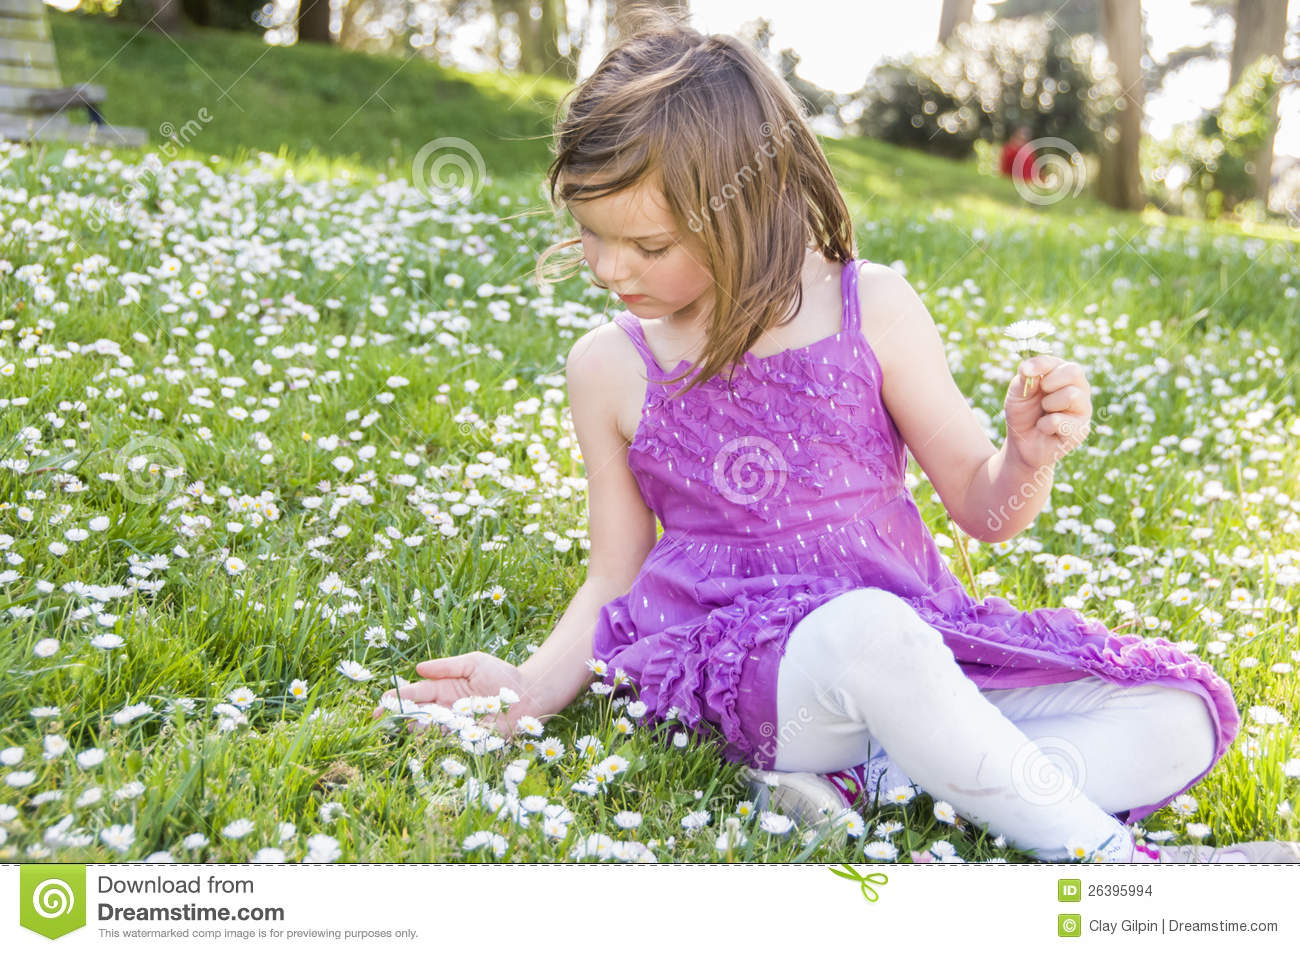 Girl In Field Of Flowers Stock Images - Image: 26395994